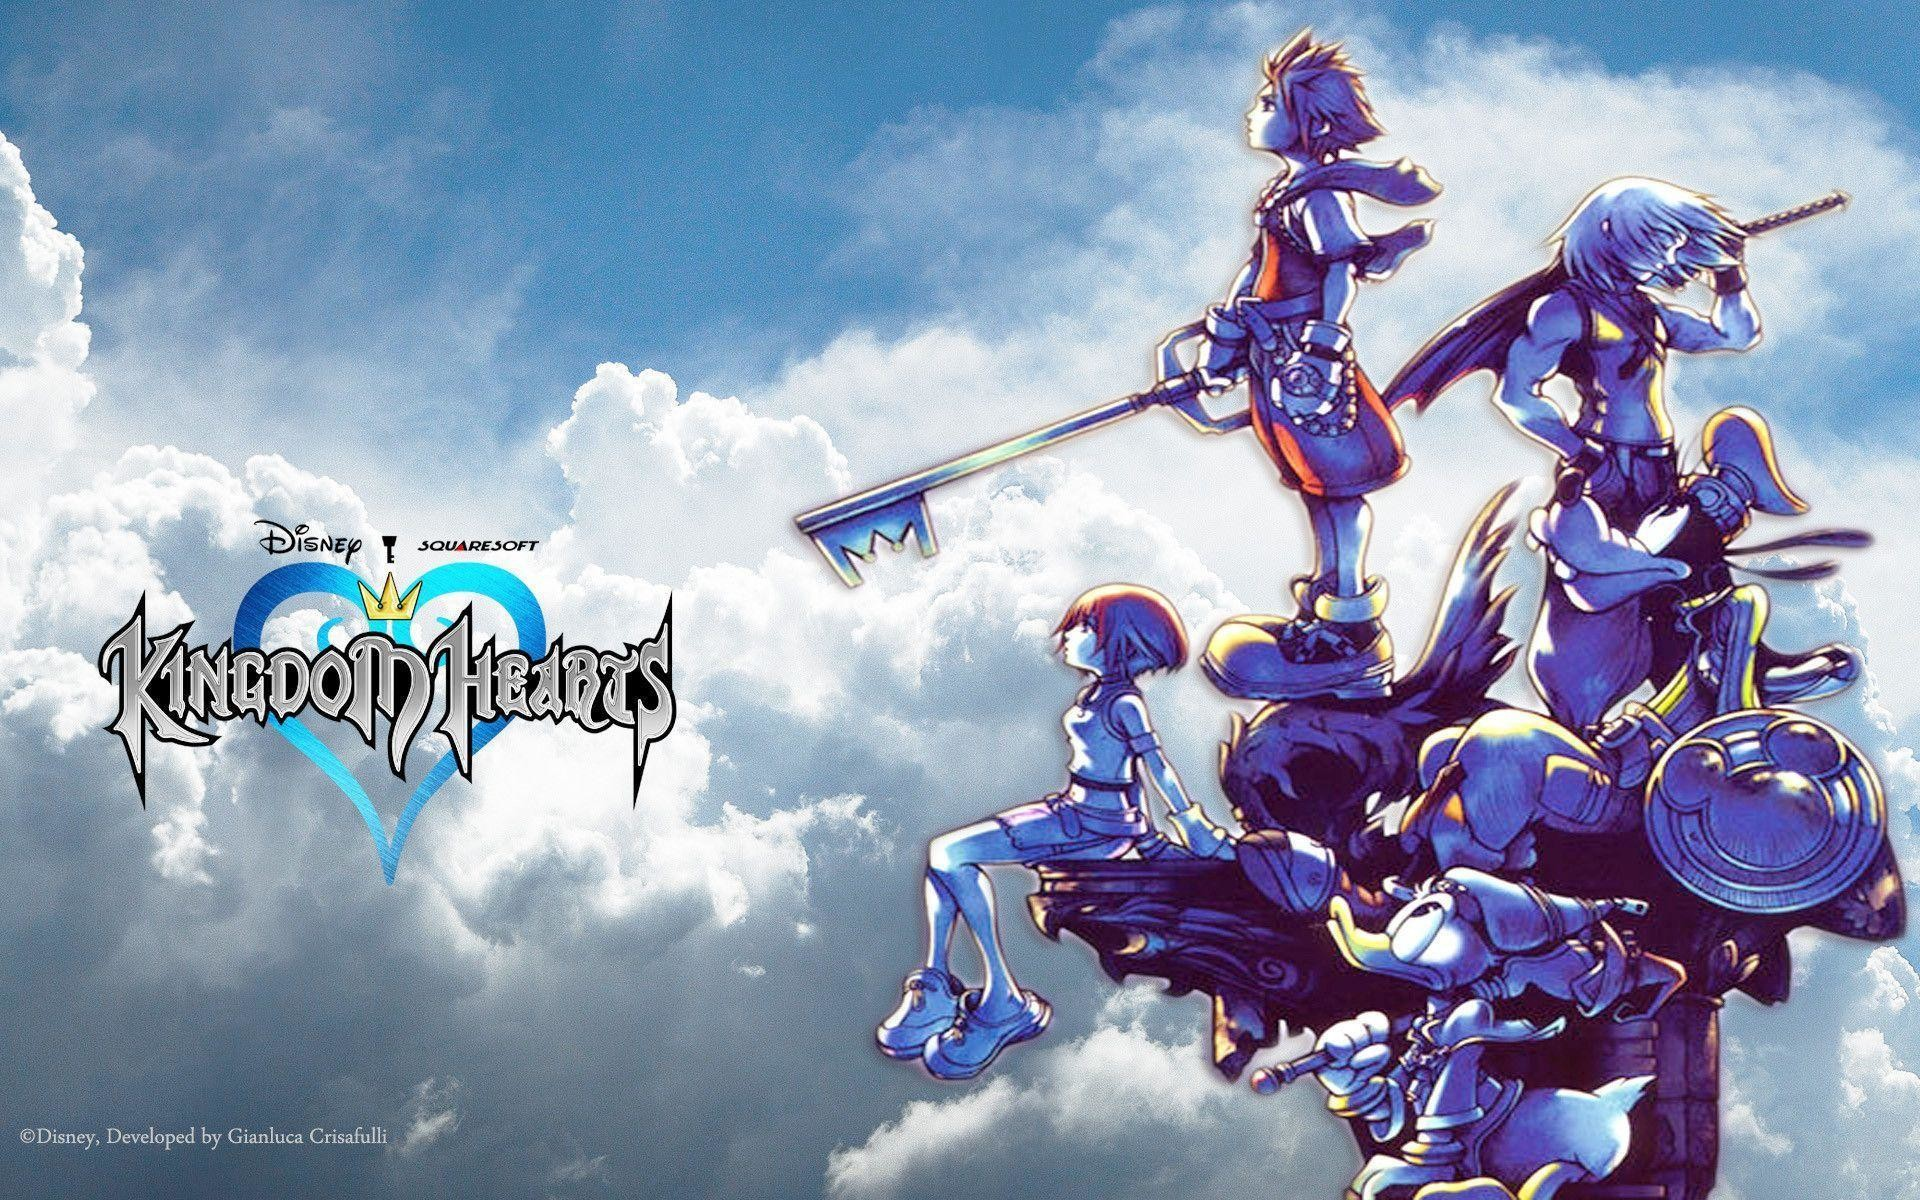 Kingdom Hearts Wallpapers Hd Wallpapertag